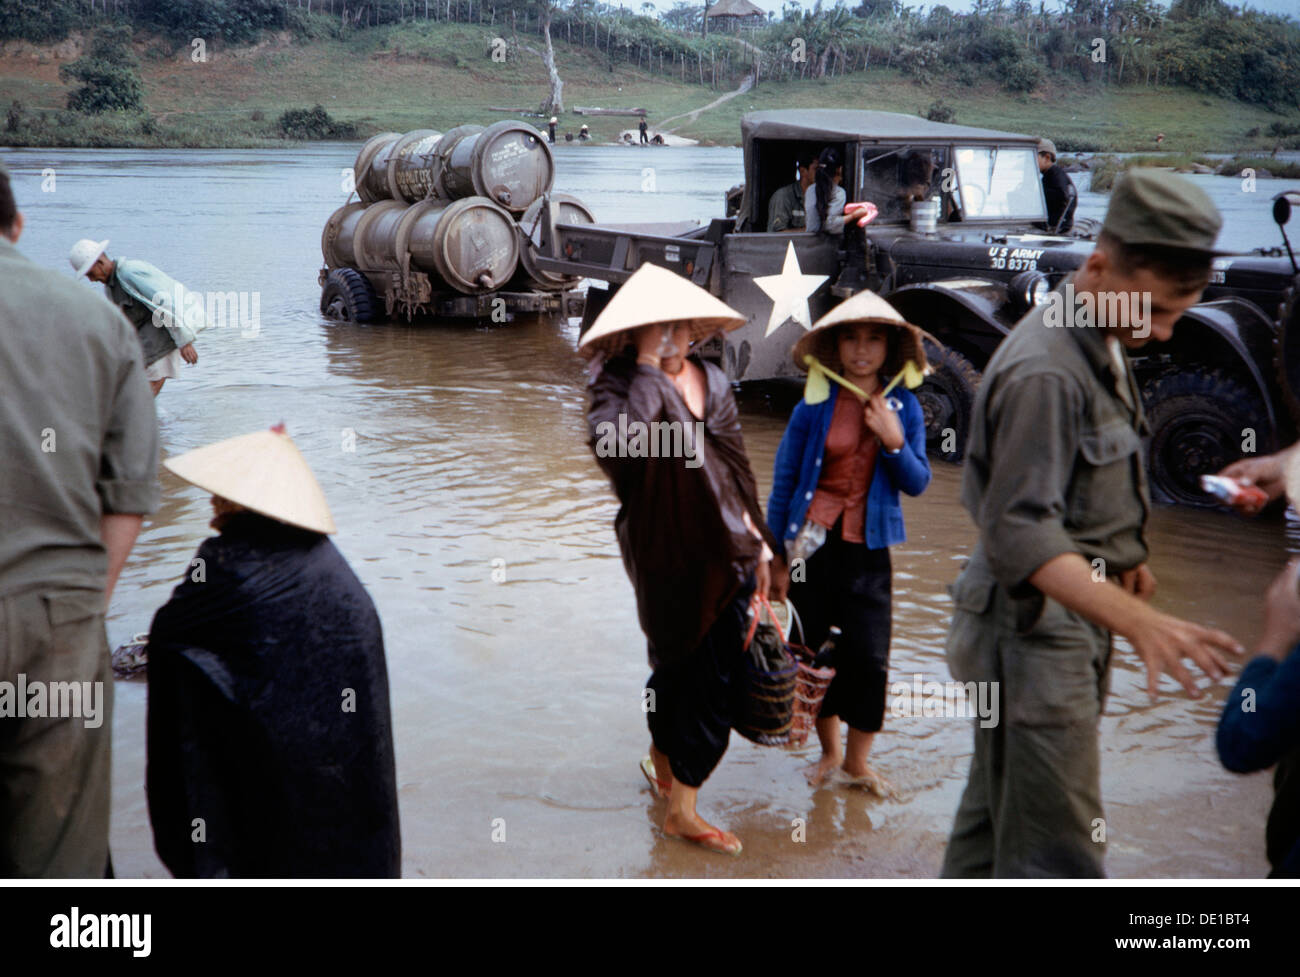 Vietnam War 1957 - 1975, young Vietnamese females and American soldiers at a ford, South Vietnam, 1965, civilian, - Stock Image